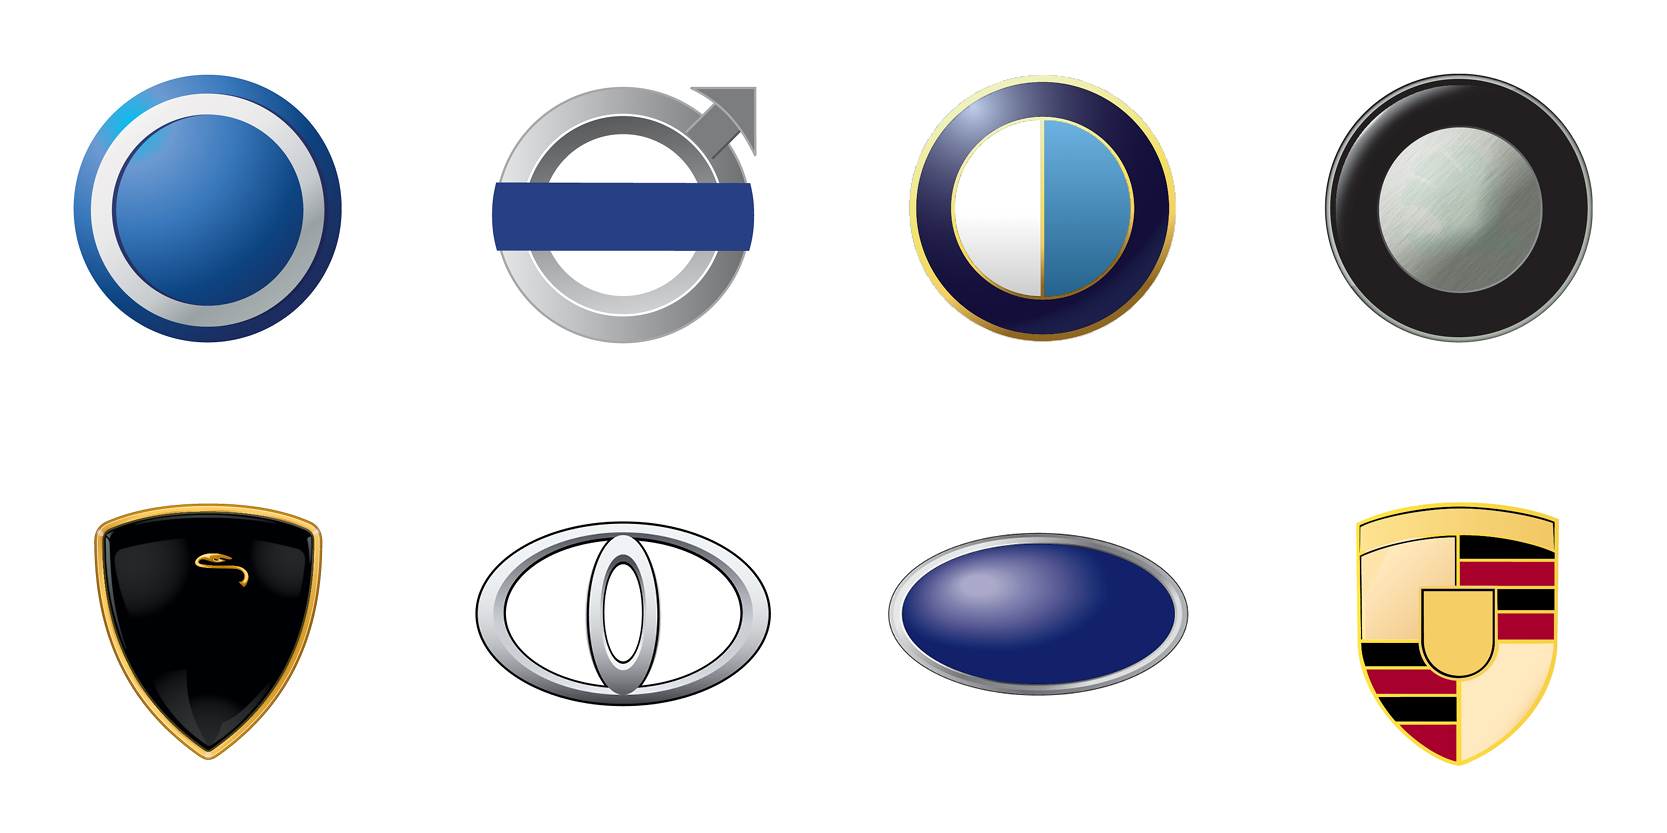 guess the logo the